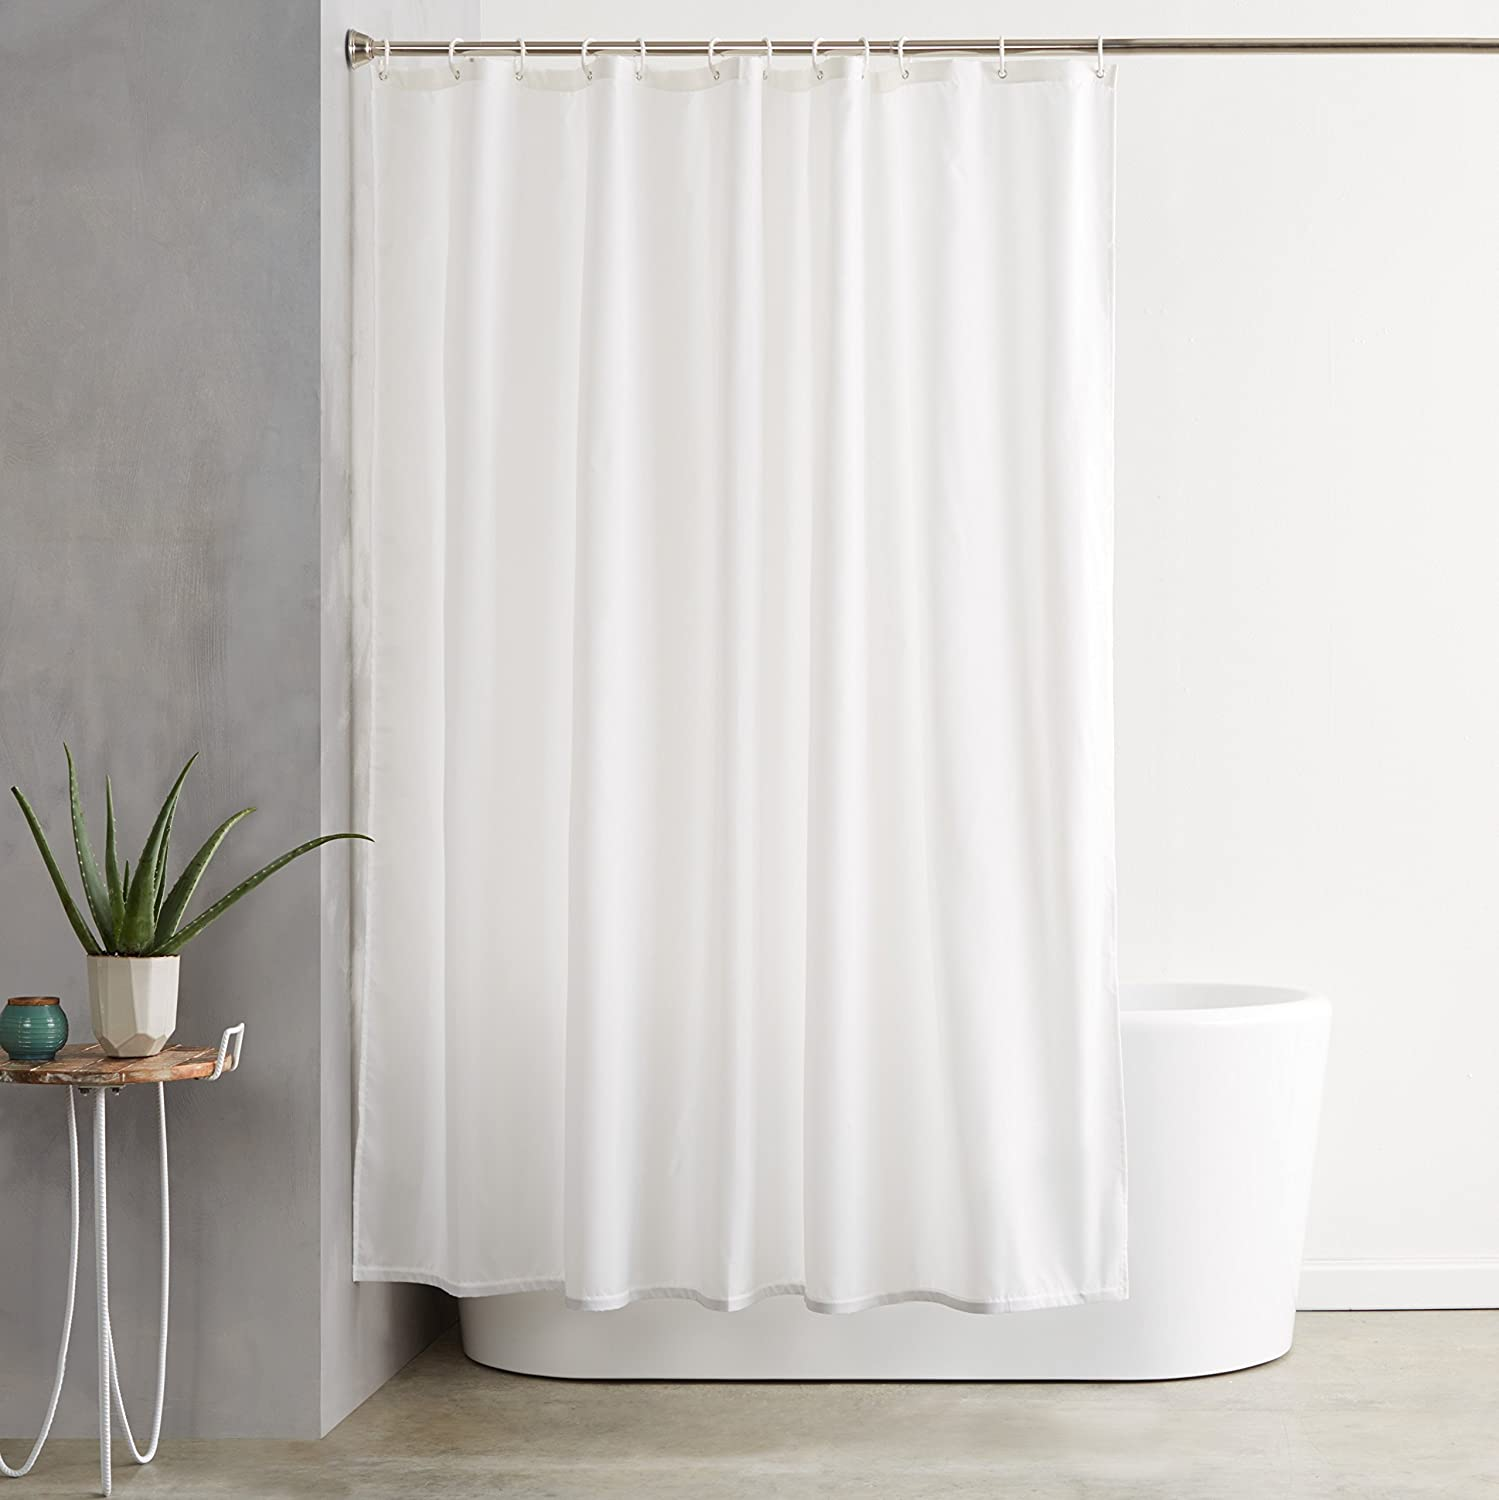 Amazon.com: AmazonBasics Shower Curtain with Hooks (Treated to ...